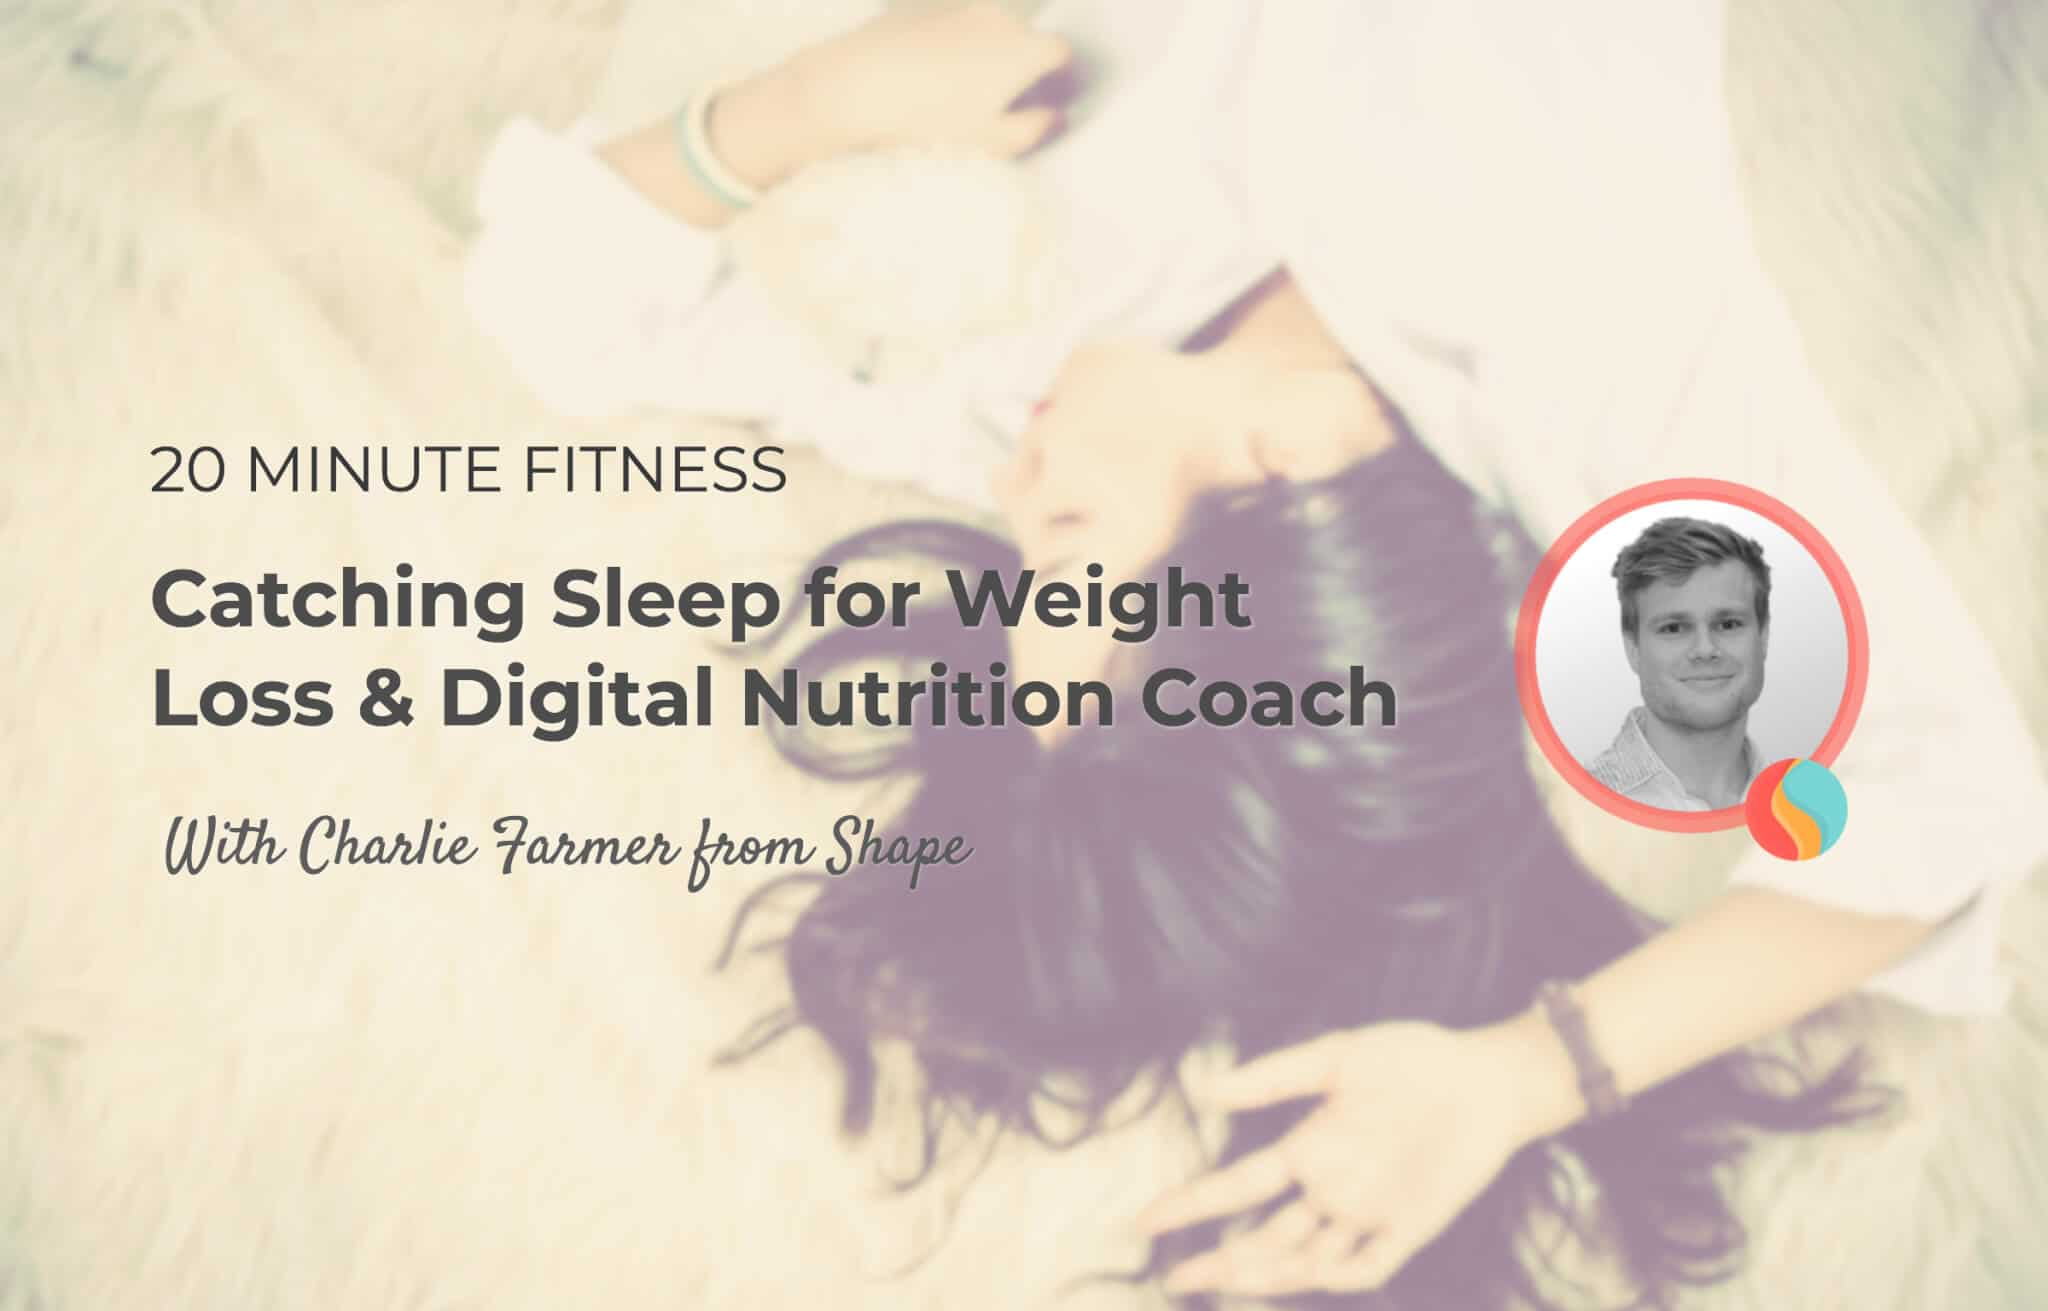 Sleeping To Lose Weight, Nutrition Coach App & More | 20 Fit